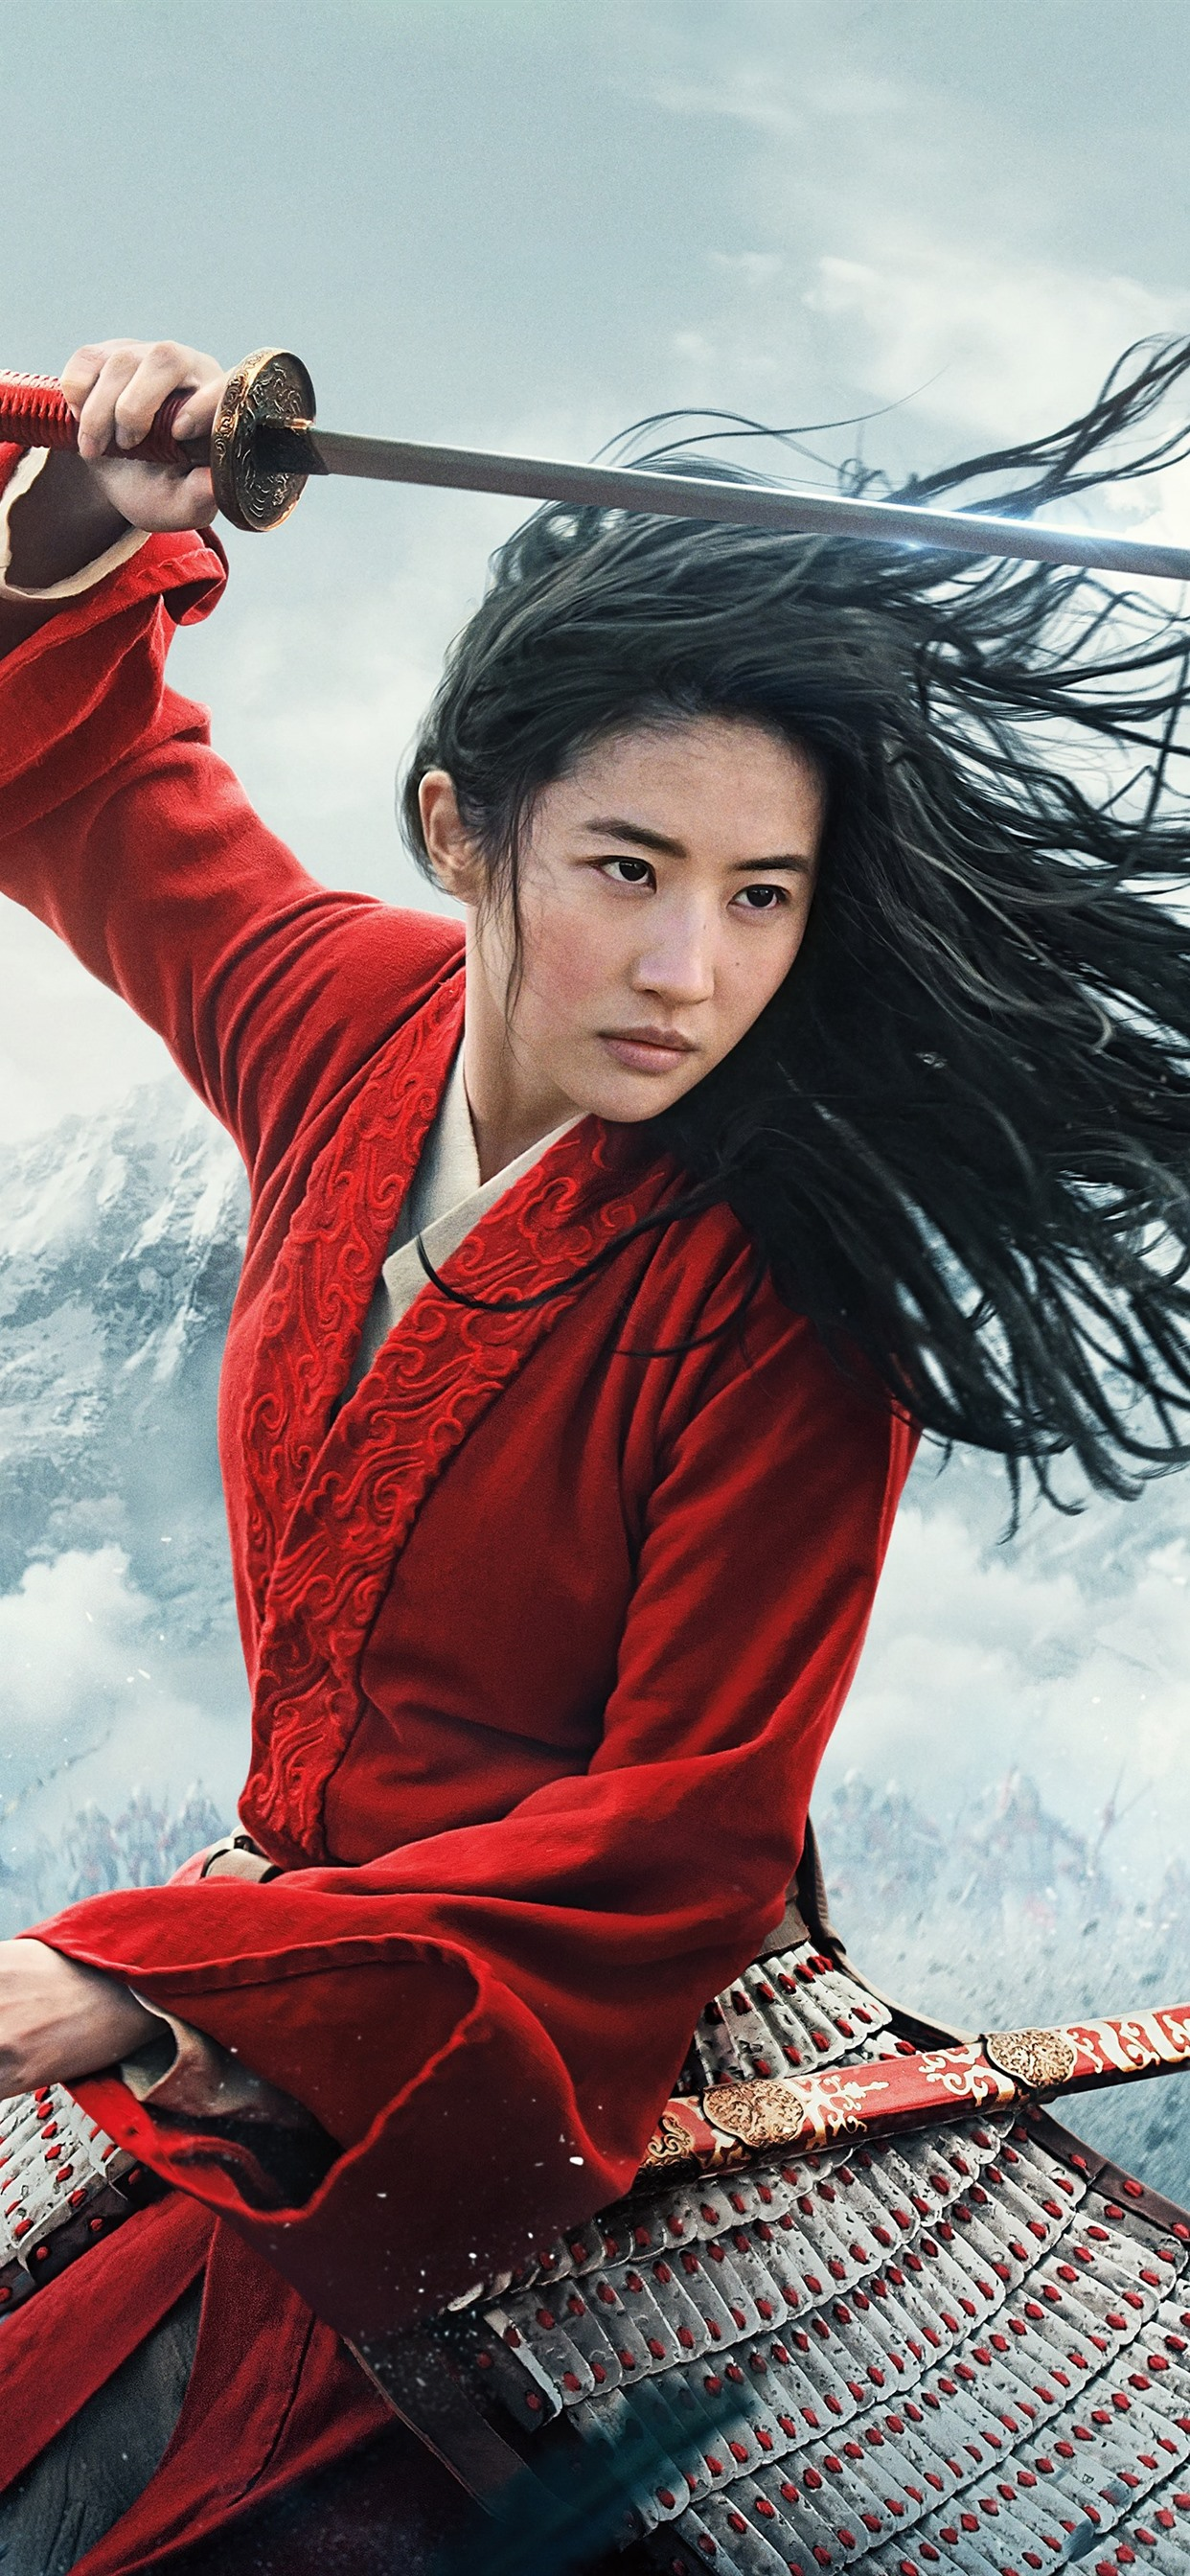 Mulan 2020 Movie 1242x2688 Iphone 11 Pro Xs Max Wallpaper Background Picture Image